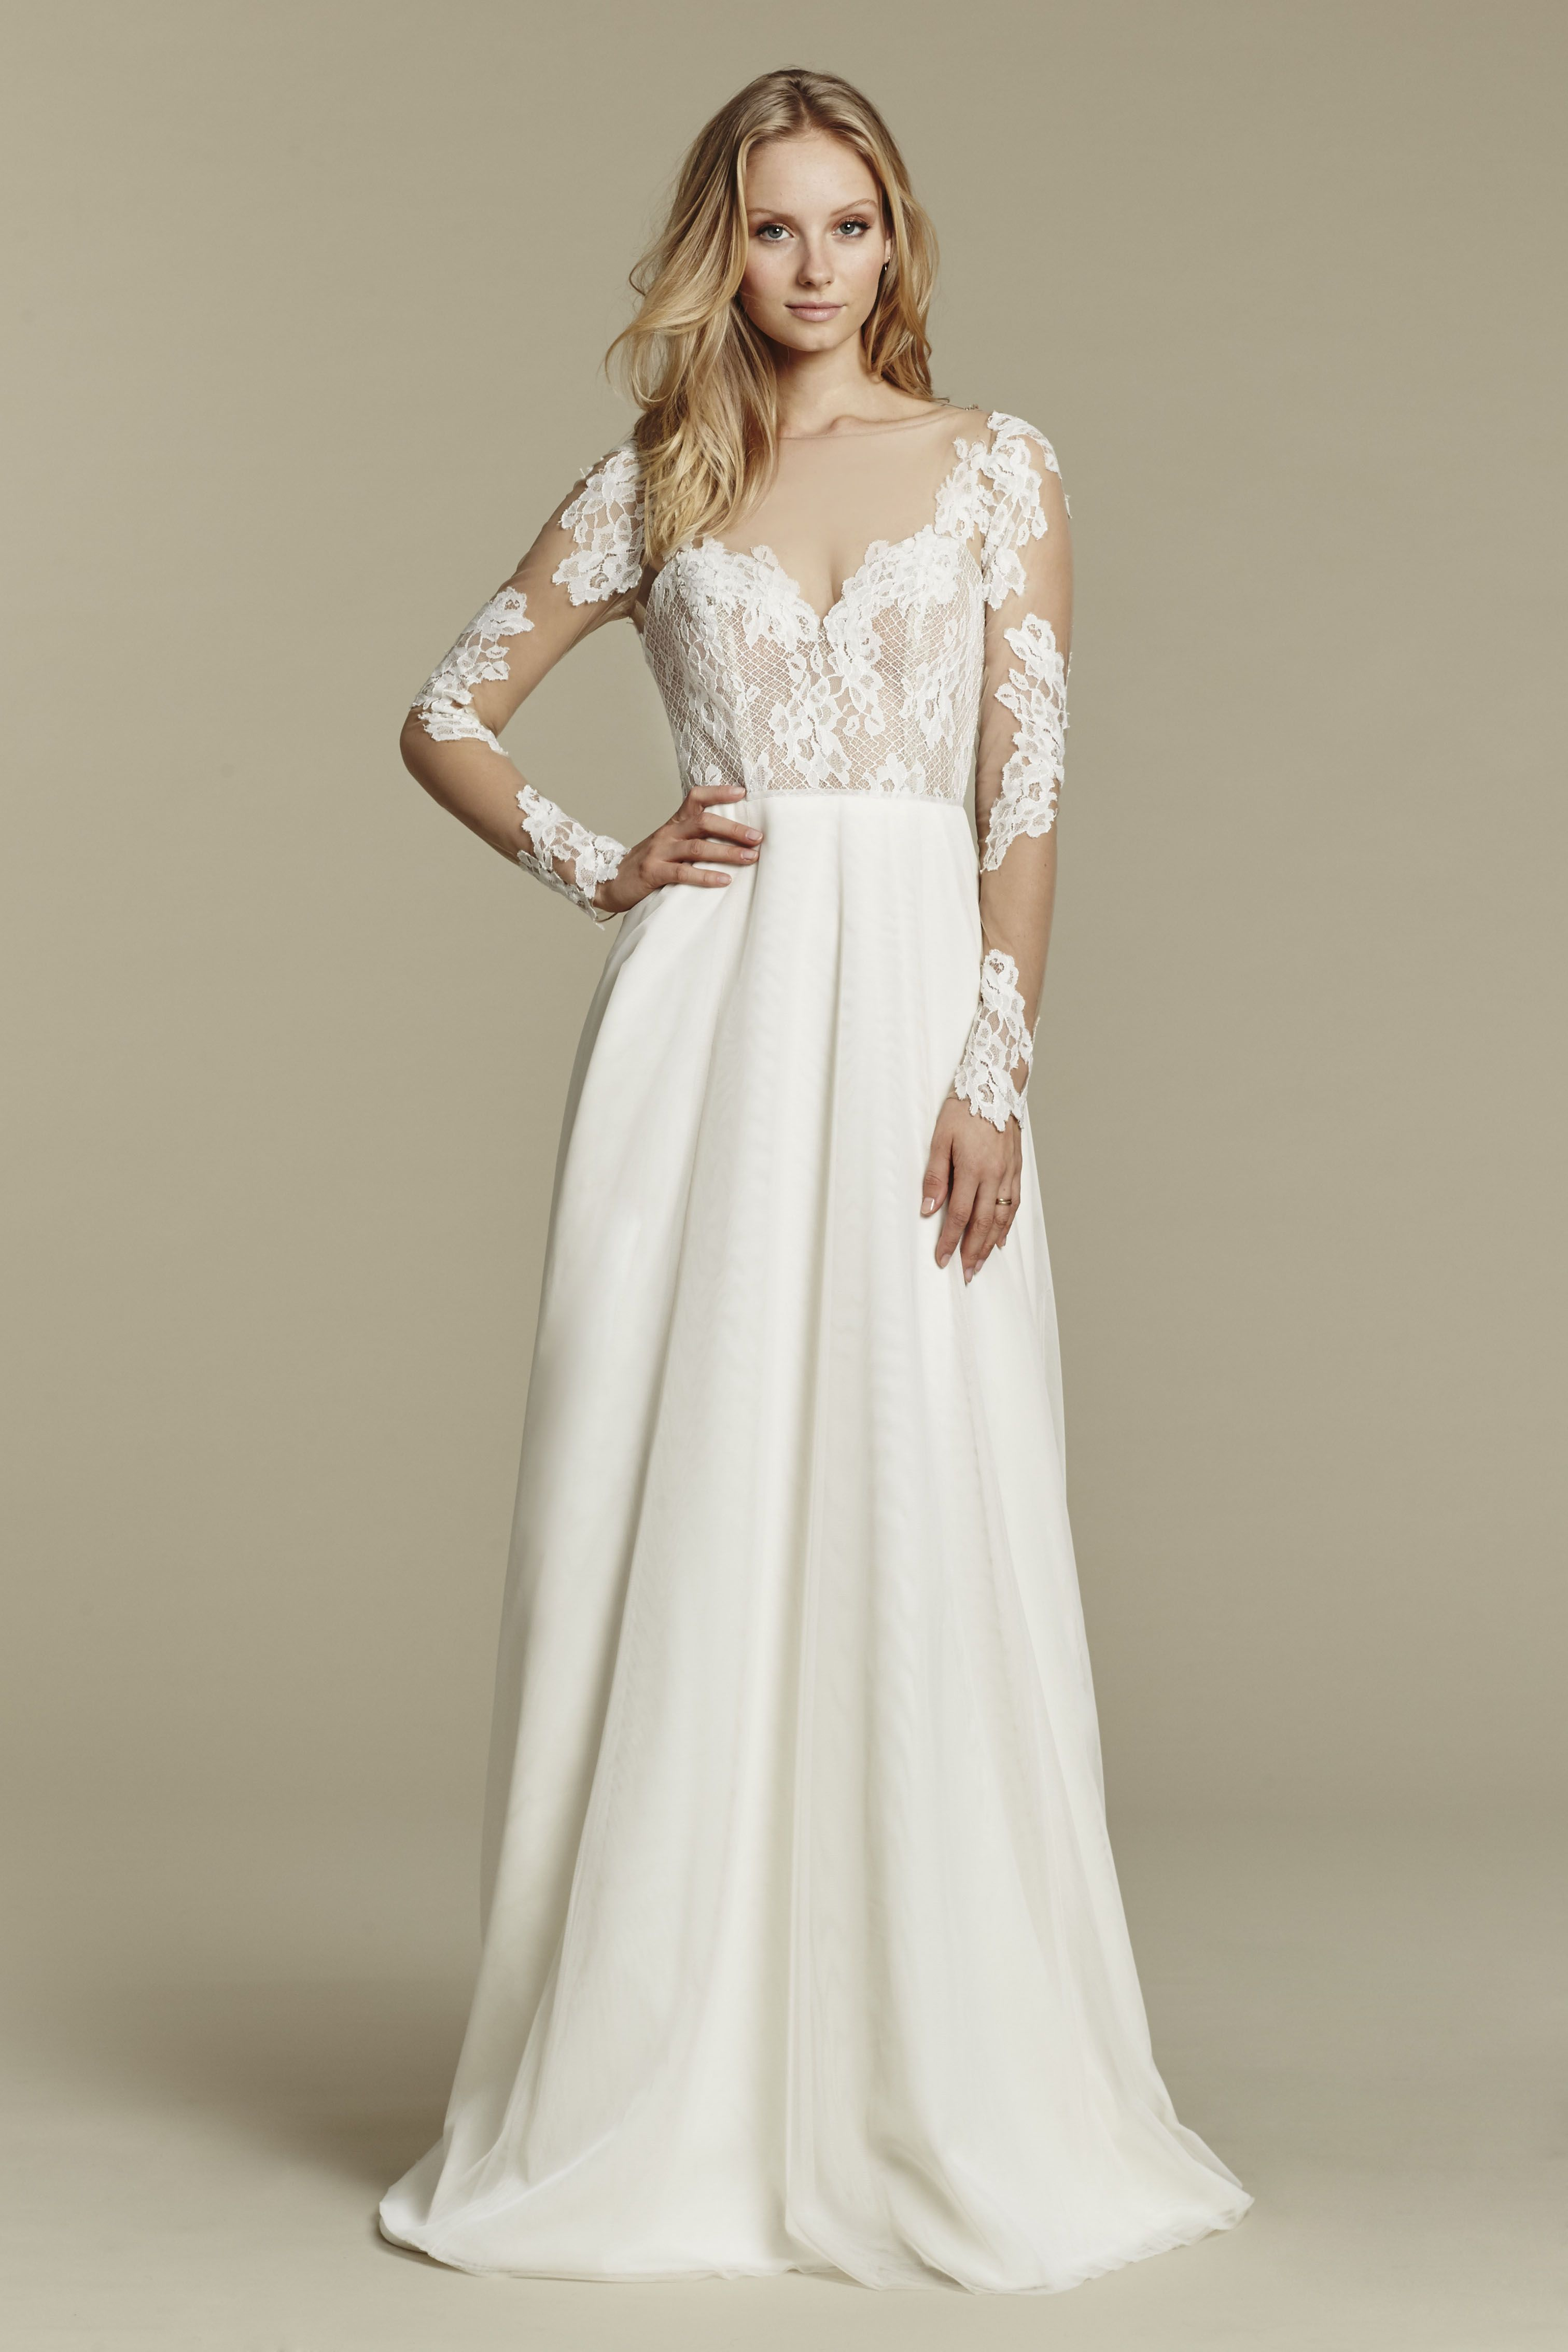 Ginger1604 ivory long sleeve lace aline bridal gown